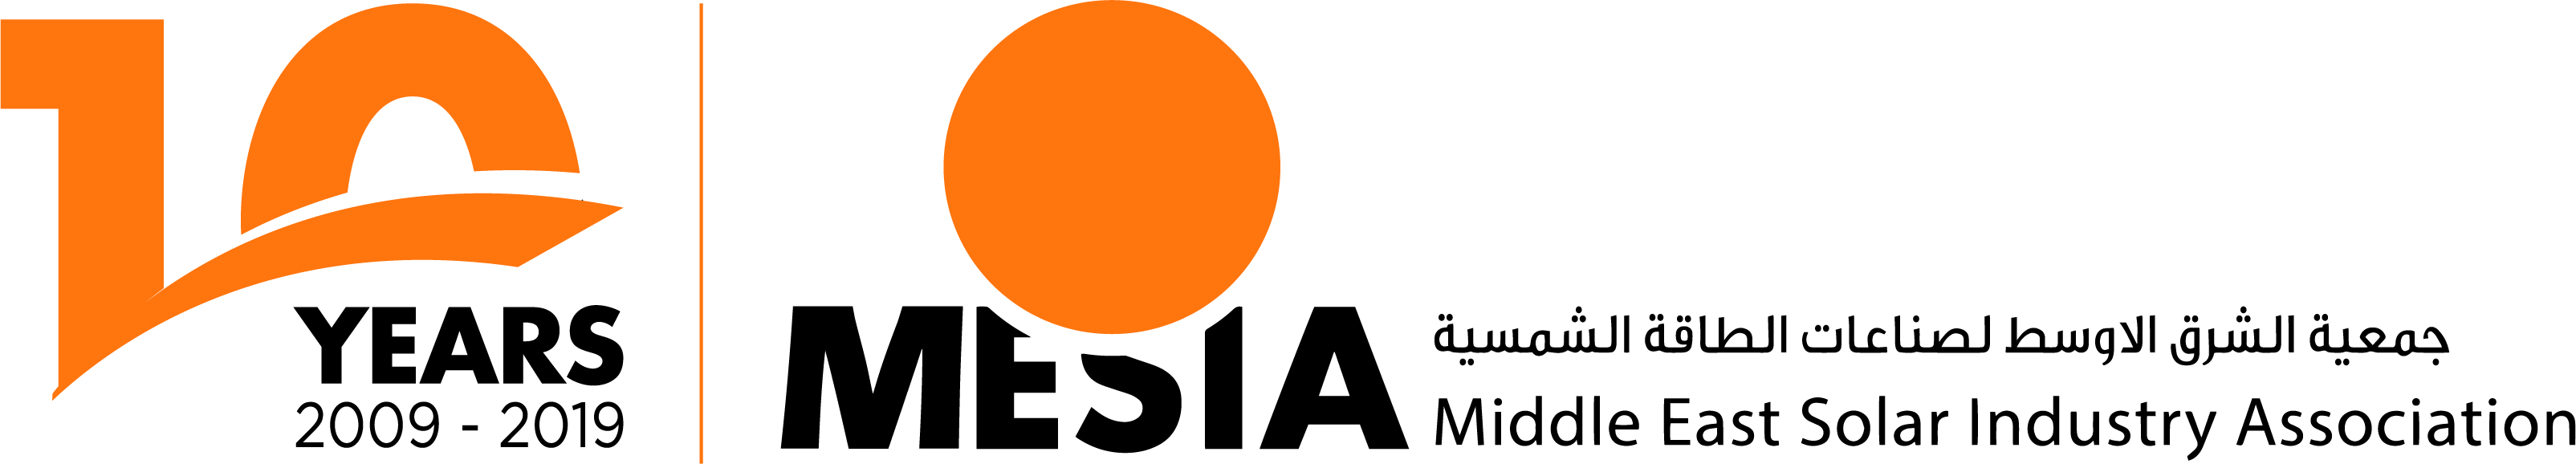 //www.atainsights.com/dubaisolarshow/wp-content/uploads/2019/07/MESIA_10YEAR_LOGO_12Dec2018.jpg